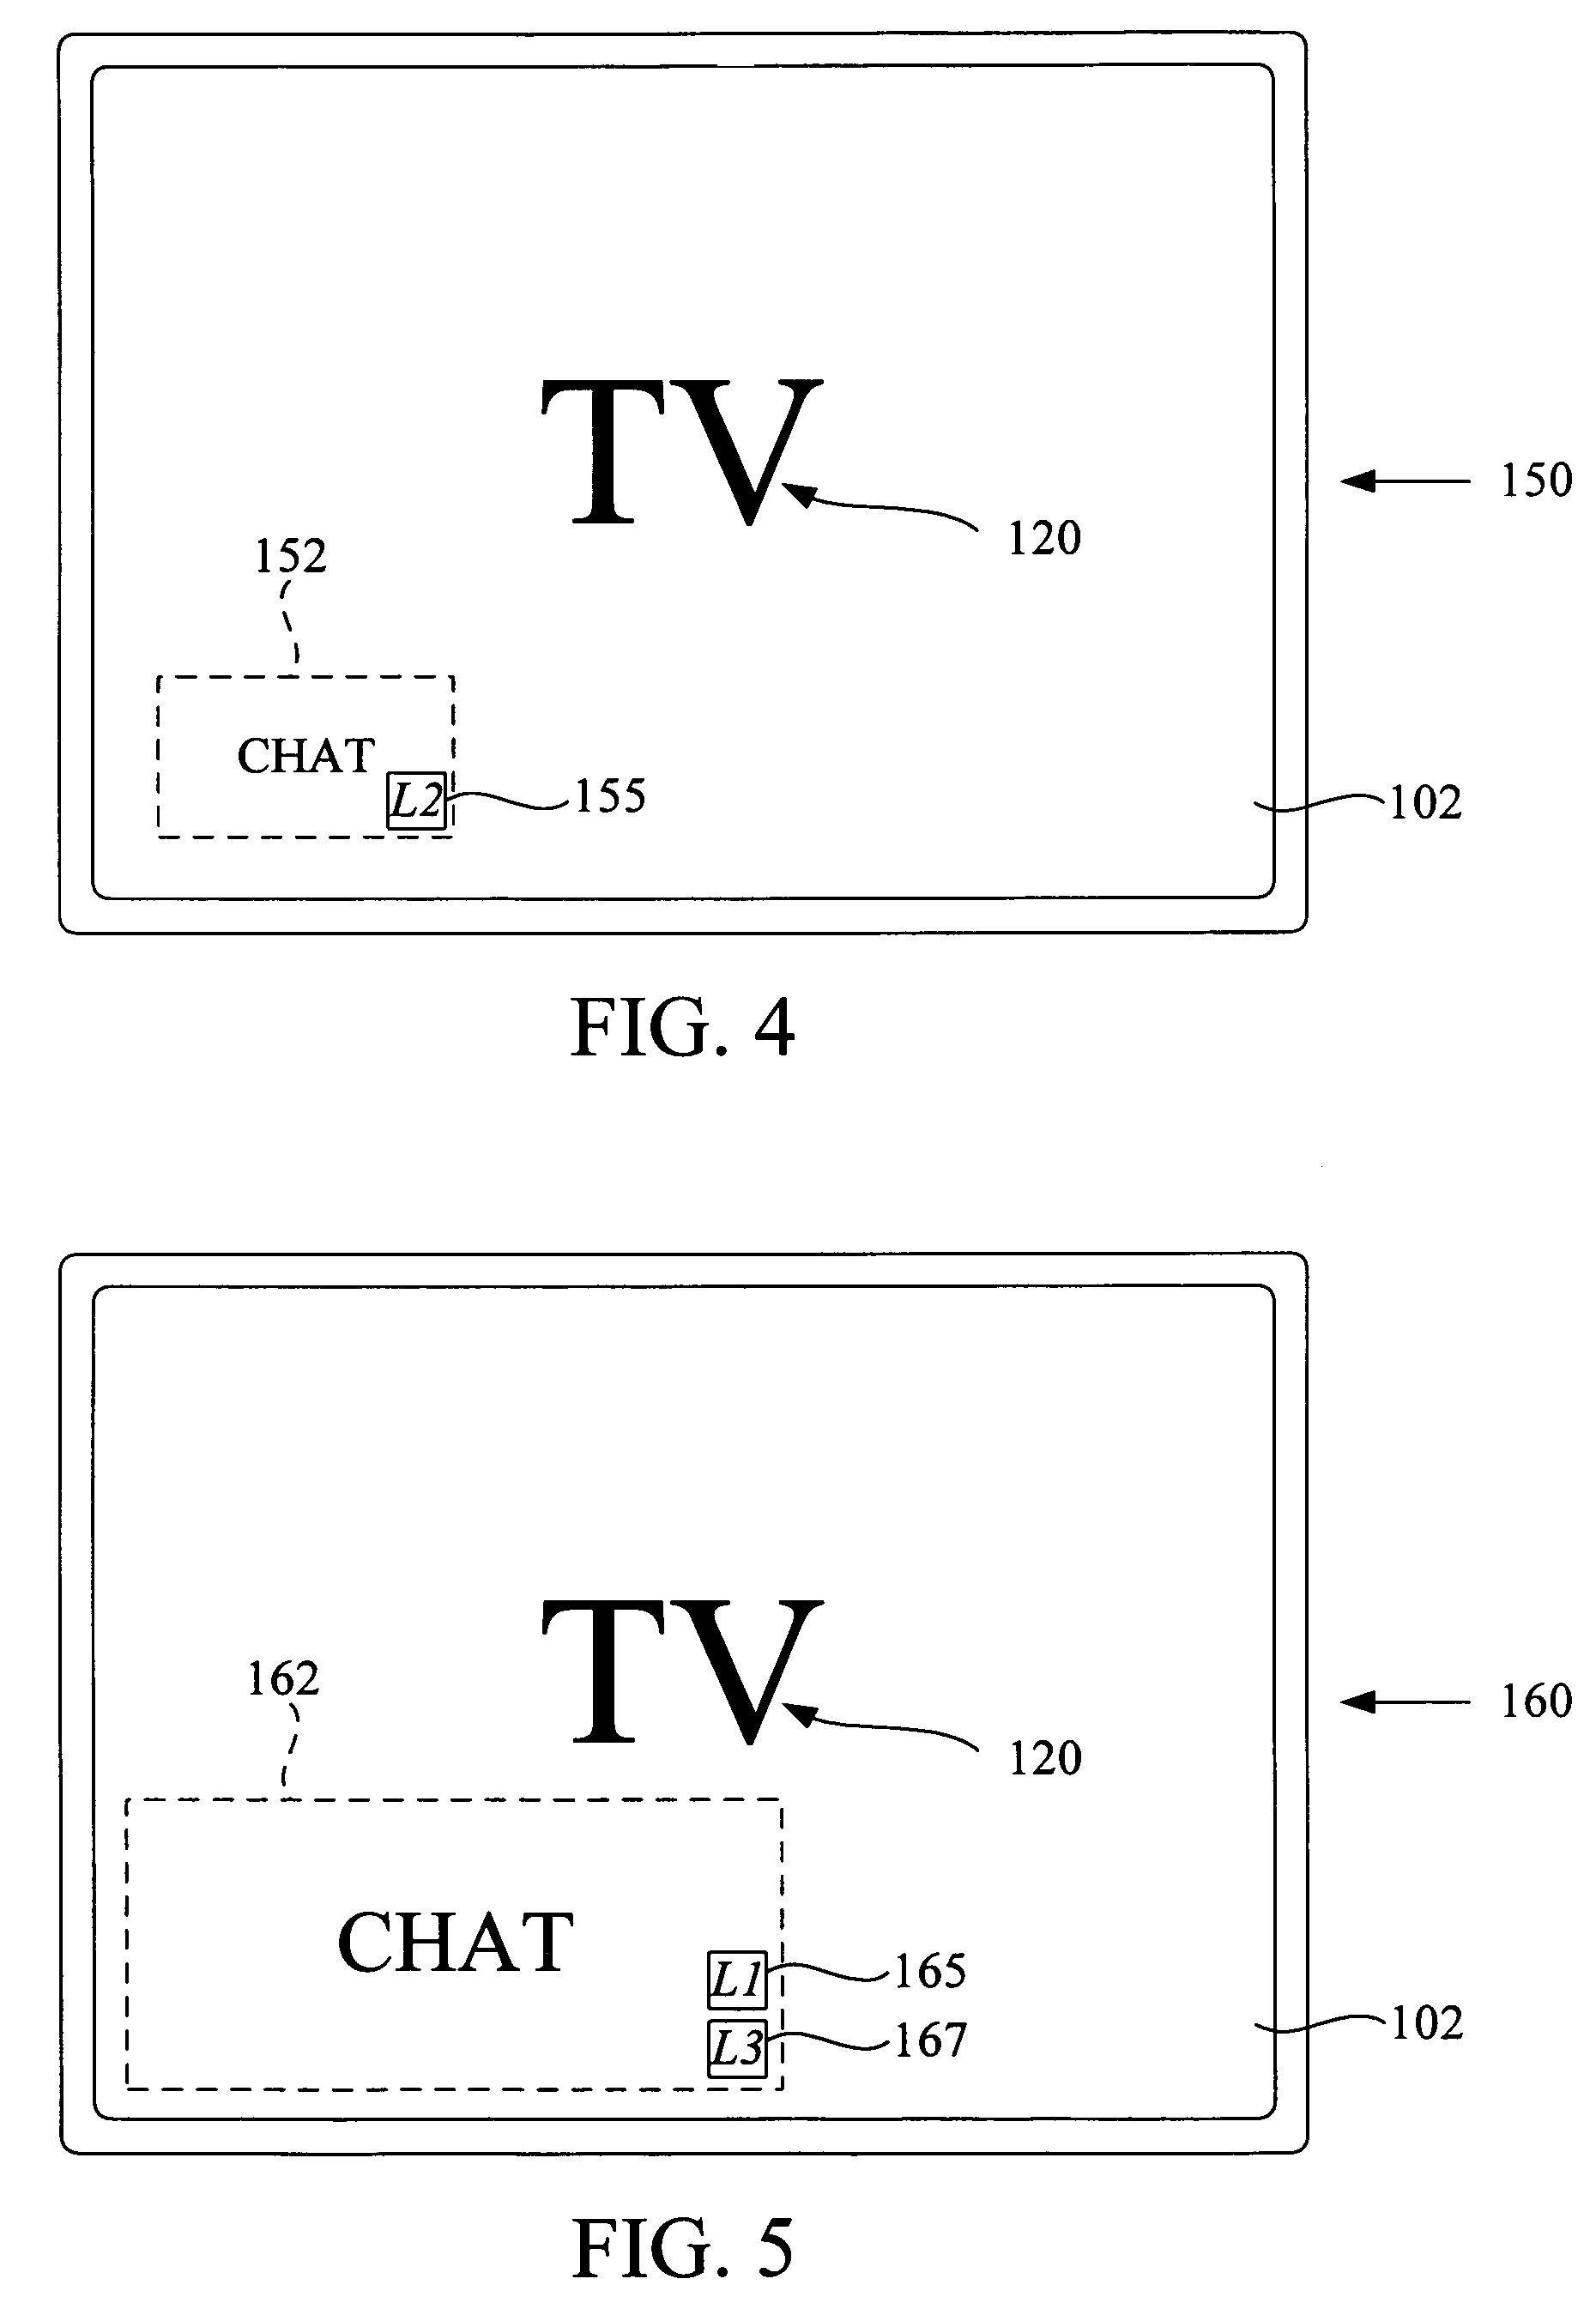 patten chatrooms [eg, an internet chat room] knowingly persuades, induces, entices, or coerces  any individual who has  patten, 397 f3d 1100, 1103 (8th cir.